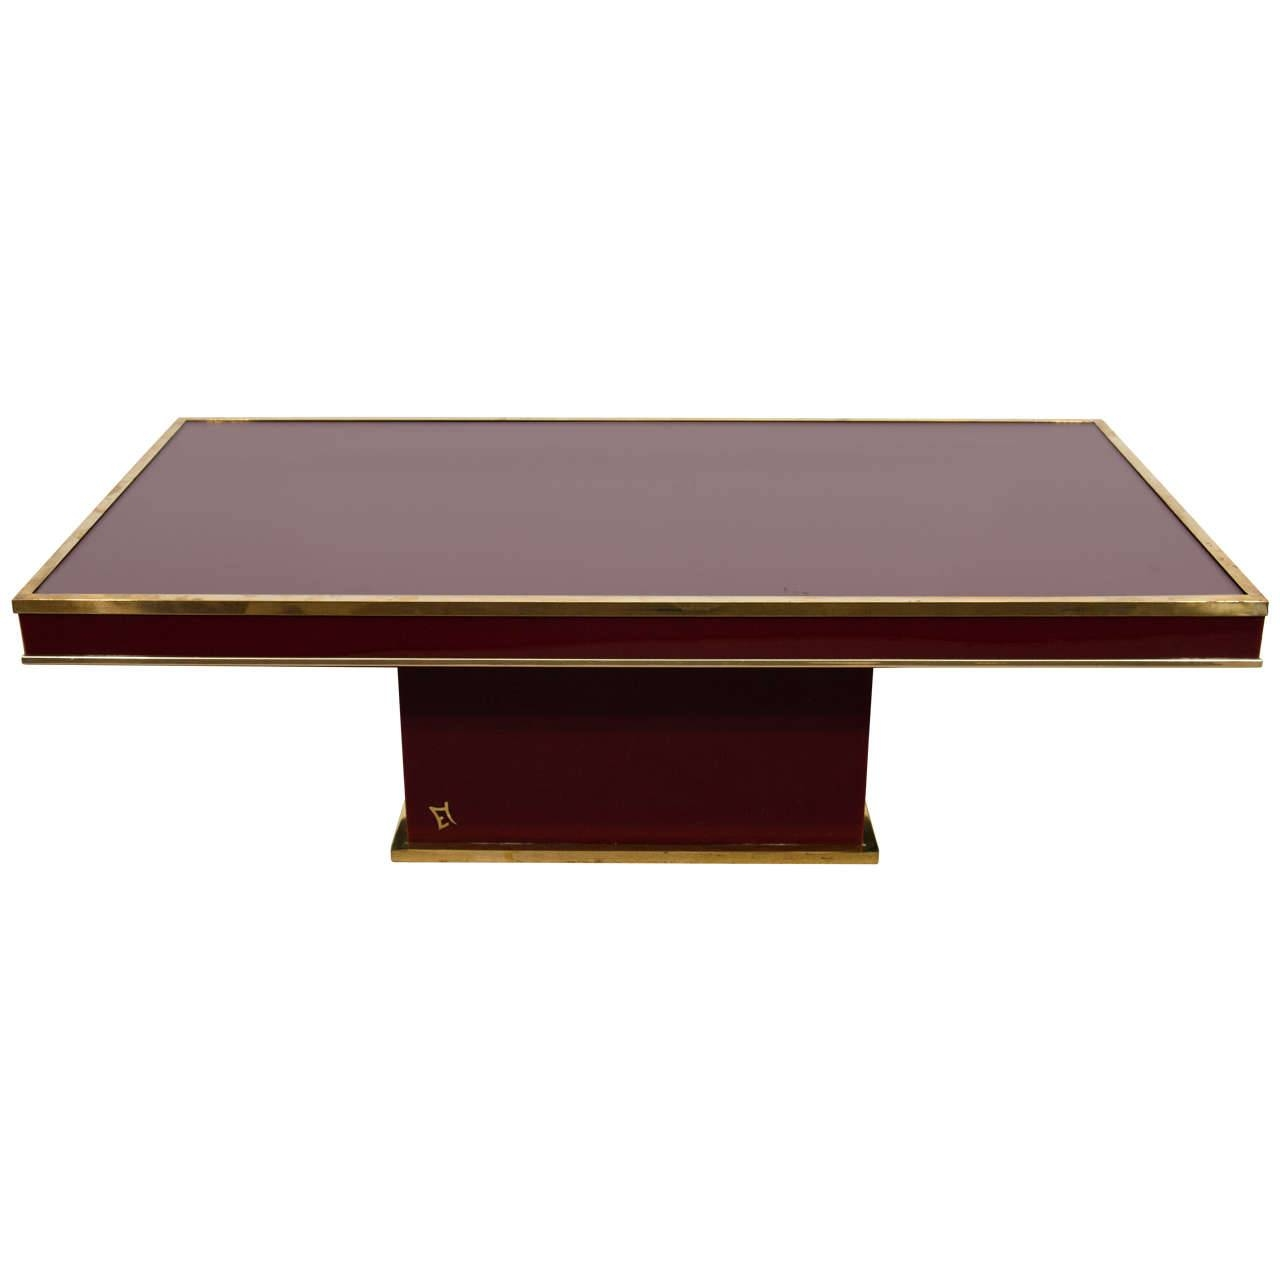 Eric Maville Modern Bordeaux Lacquered And Brass Coffee Table throughout Bordeaux Coffee Tables (Image 14 of 30)